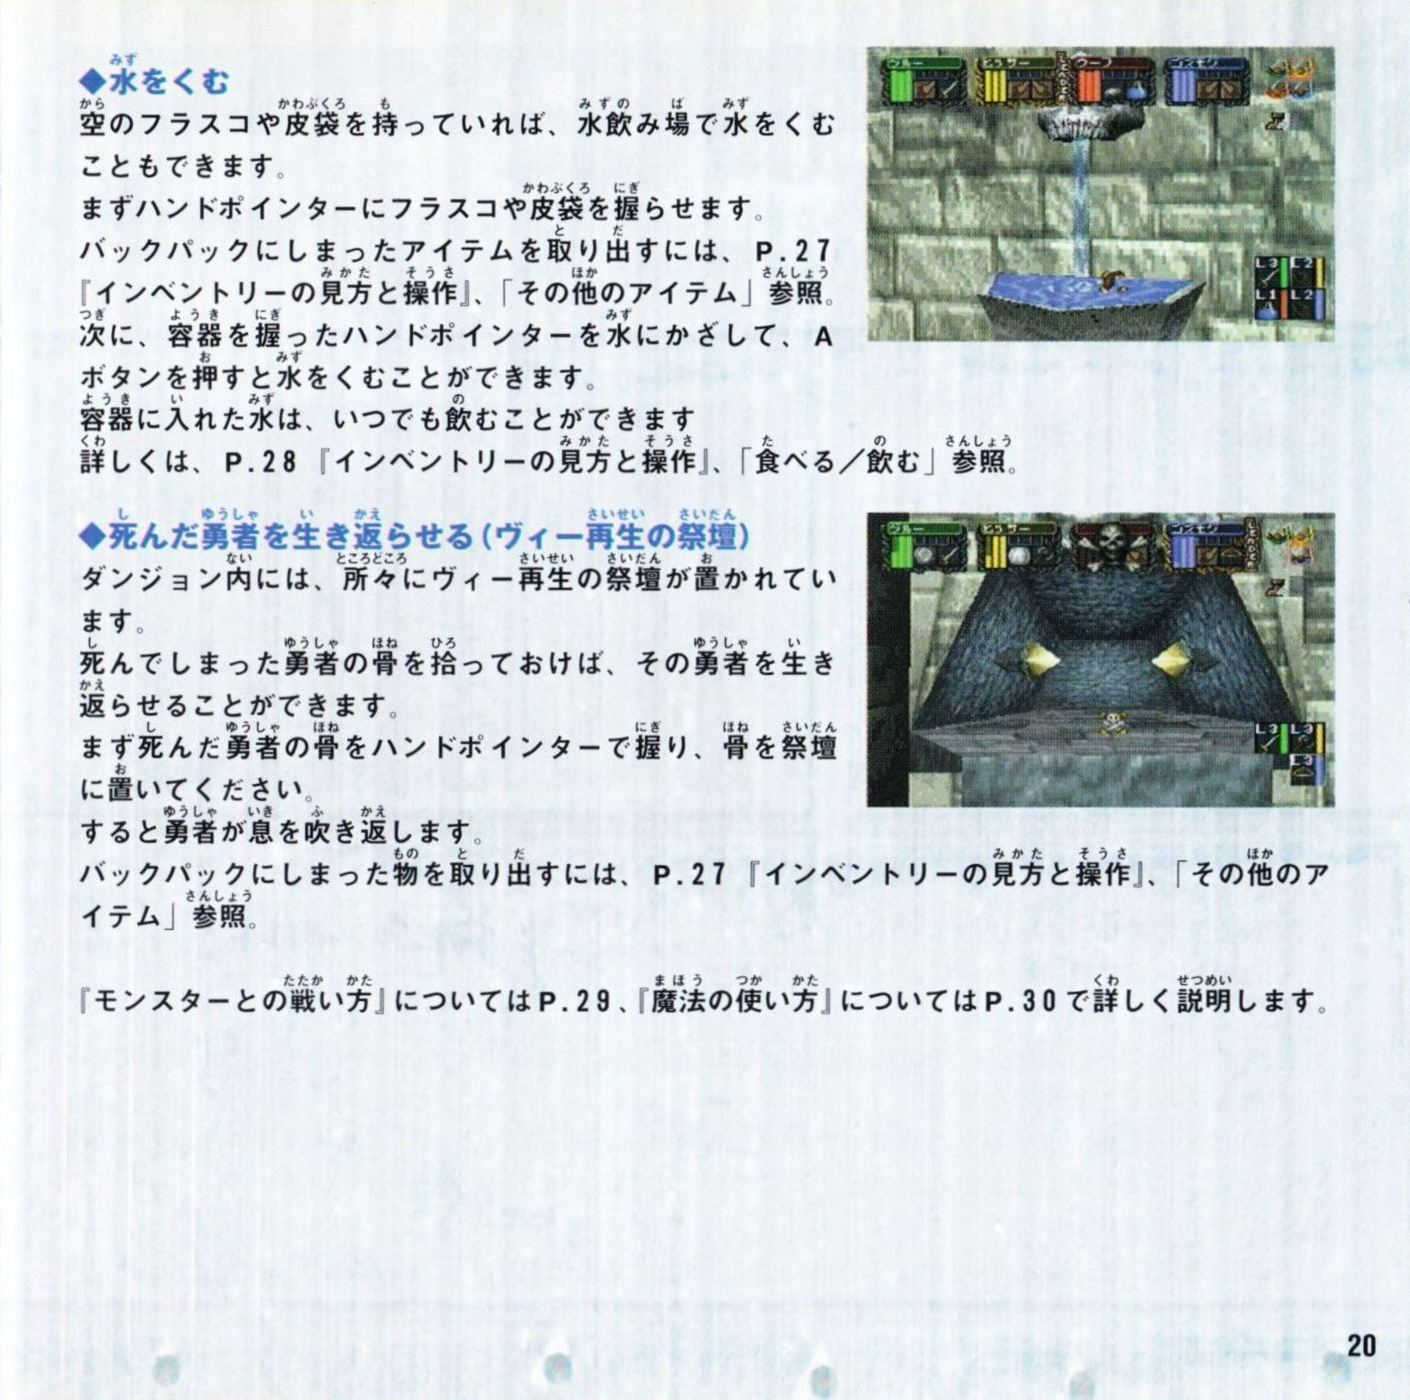 Game - Dungeon Master Nexus - JP - Sega Saturn - Booklet - Page 021 - Scan